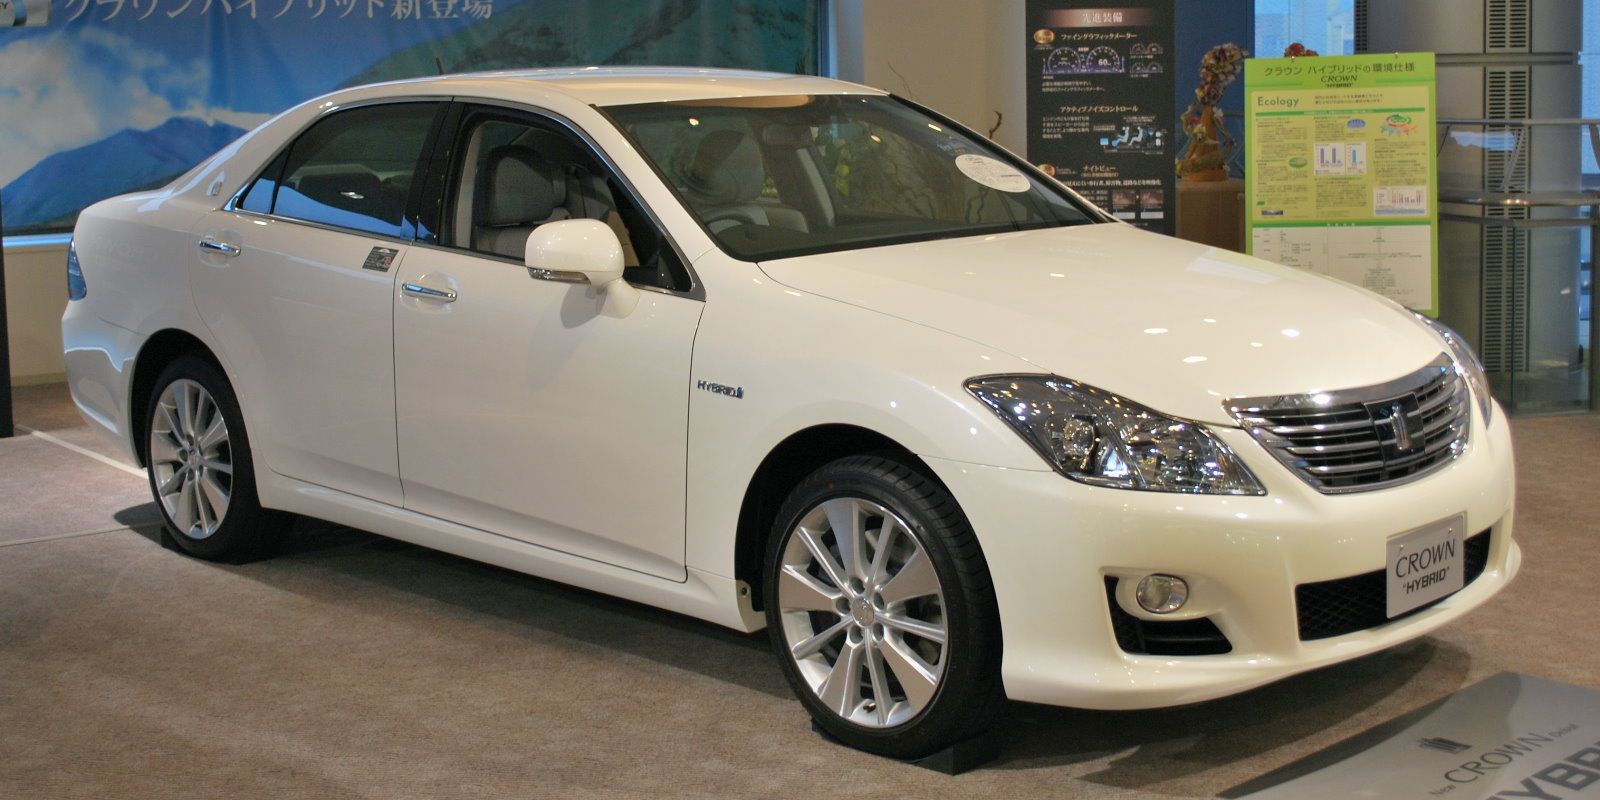 Toyota Crown s Reviews News Specs Buy car